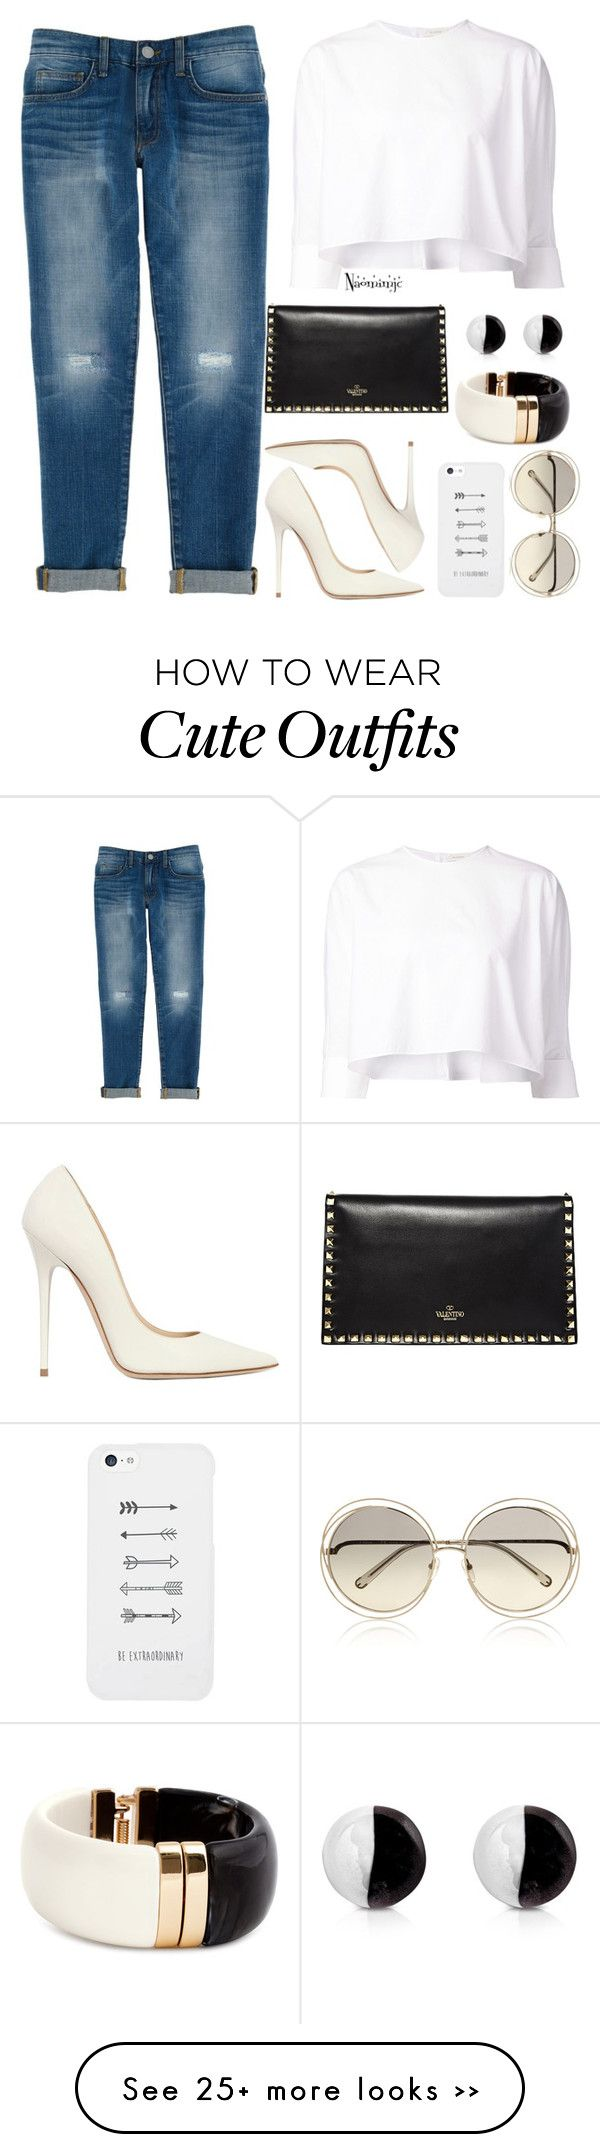 best polyvore outfits images on pinterest polyvore fashion